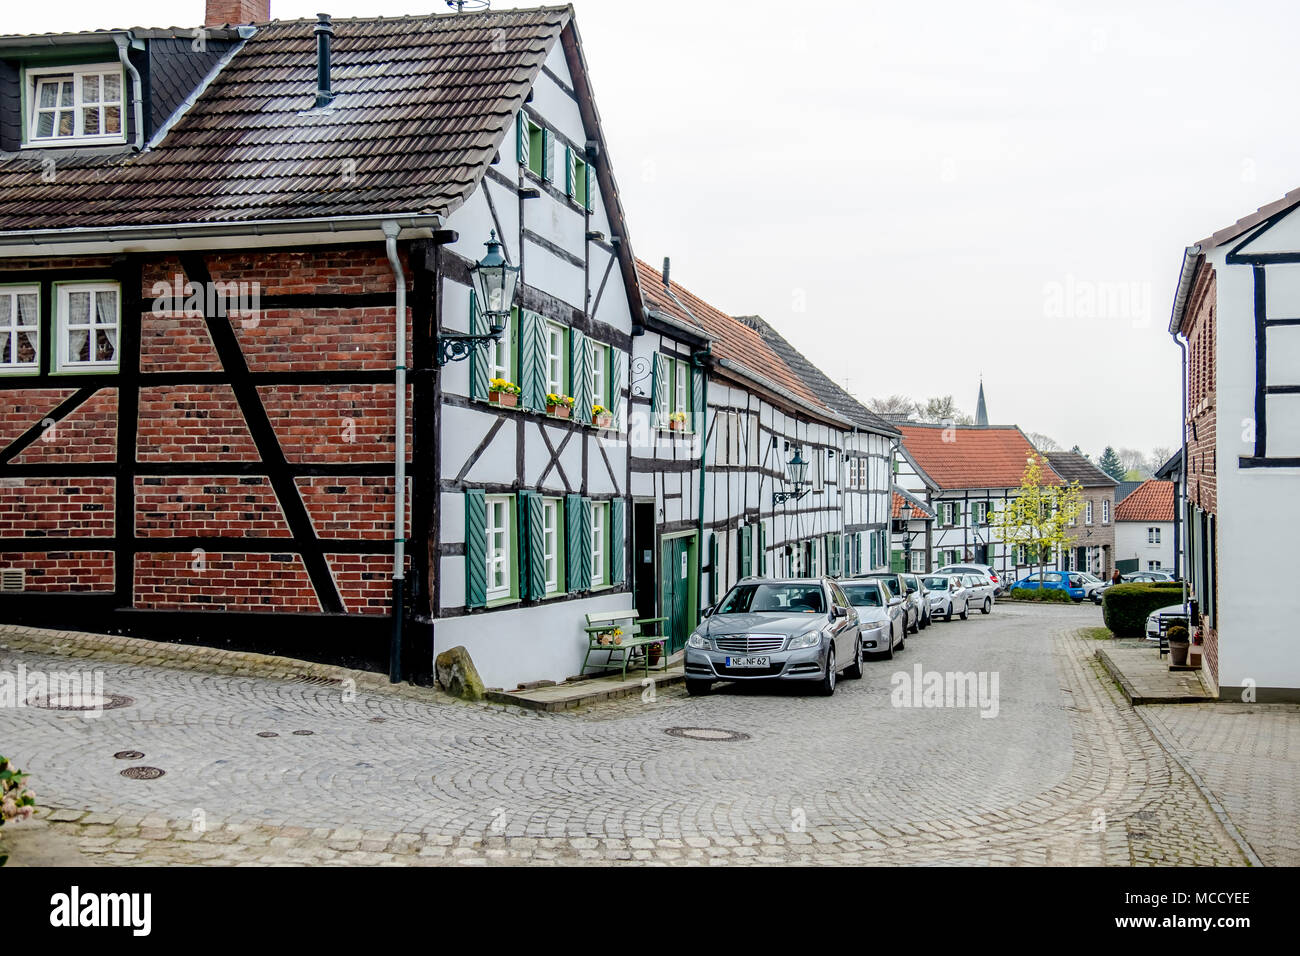 LIEDBERG / GERMANY - APRIL 14 2018: The historic old town Liedberg in NRW, Germany. - Stock Image